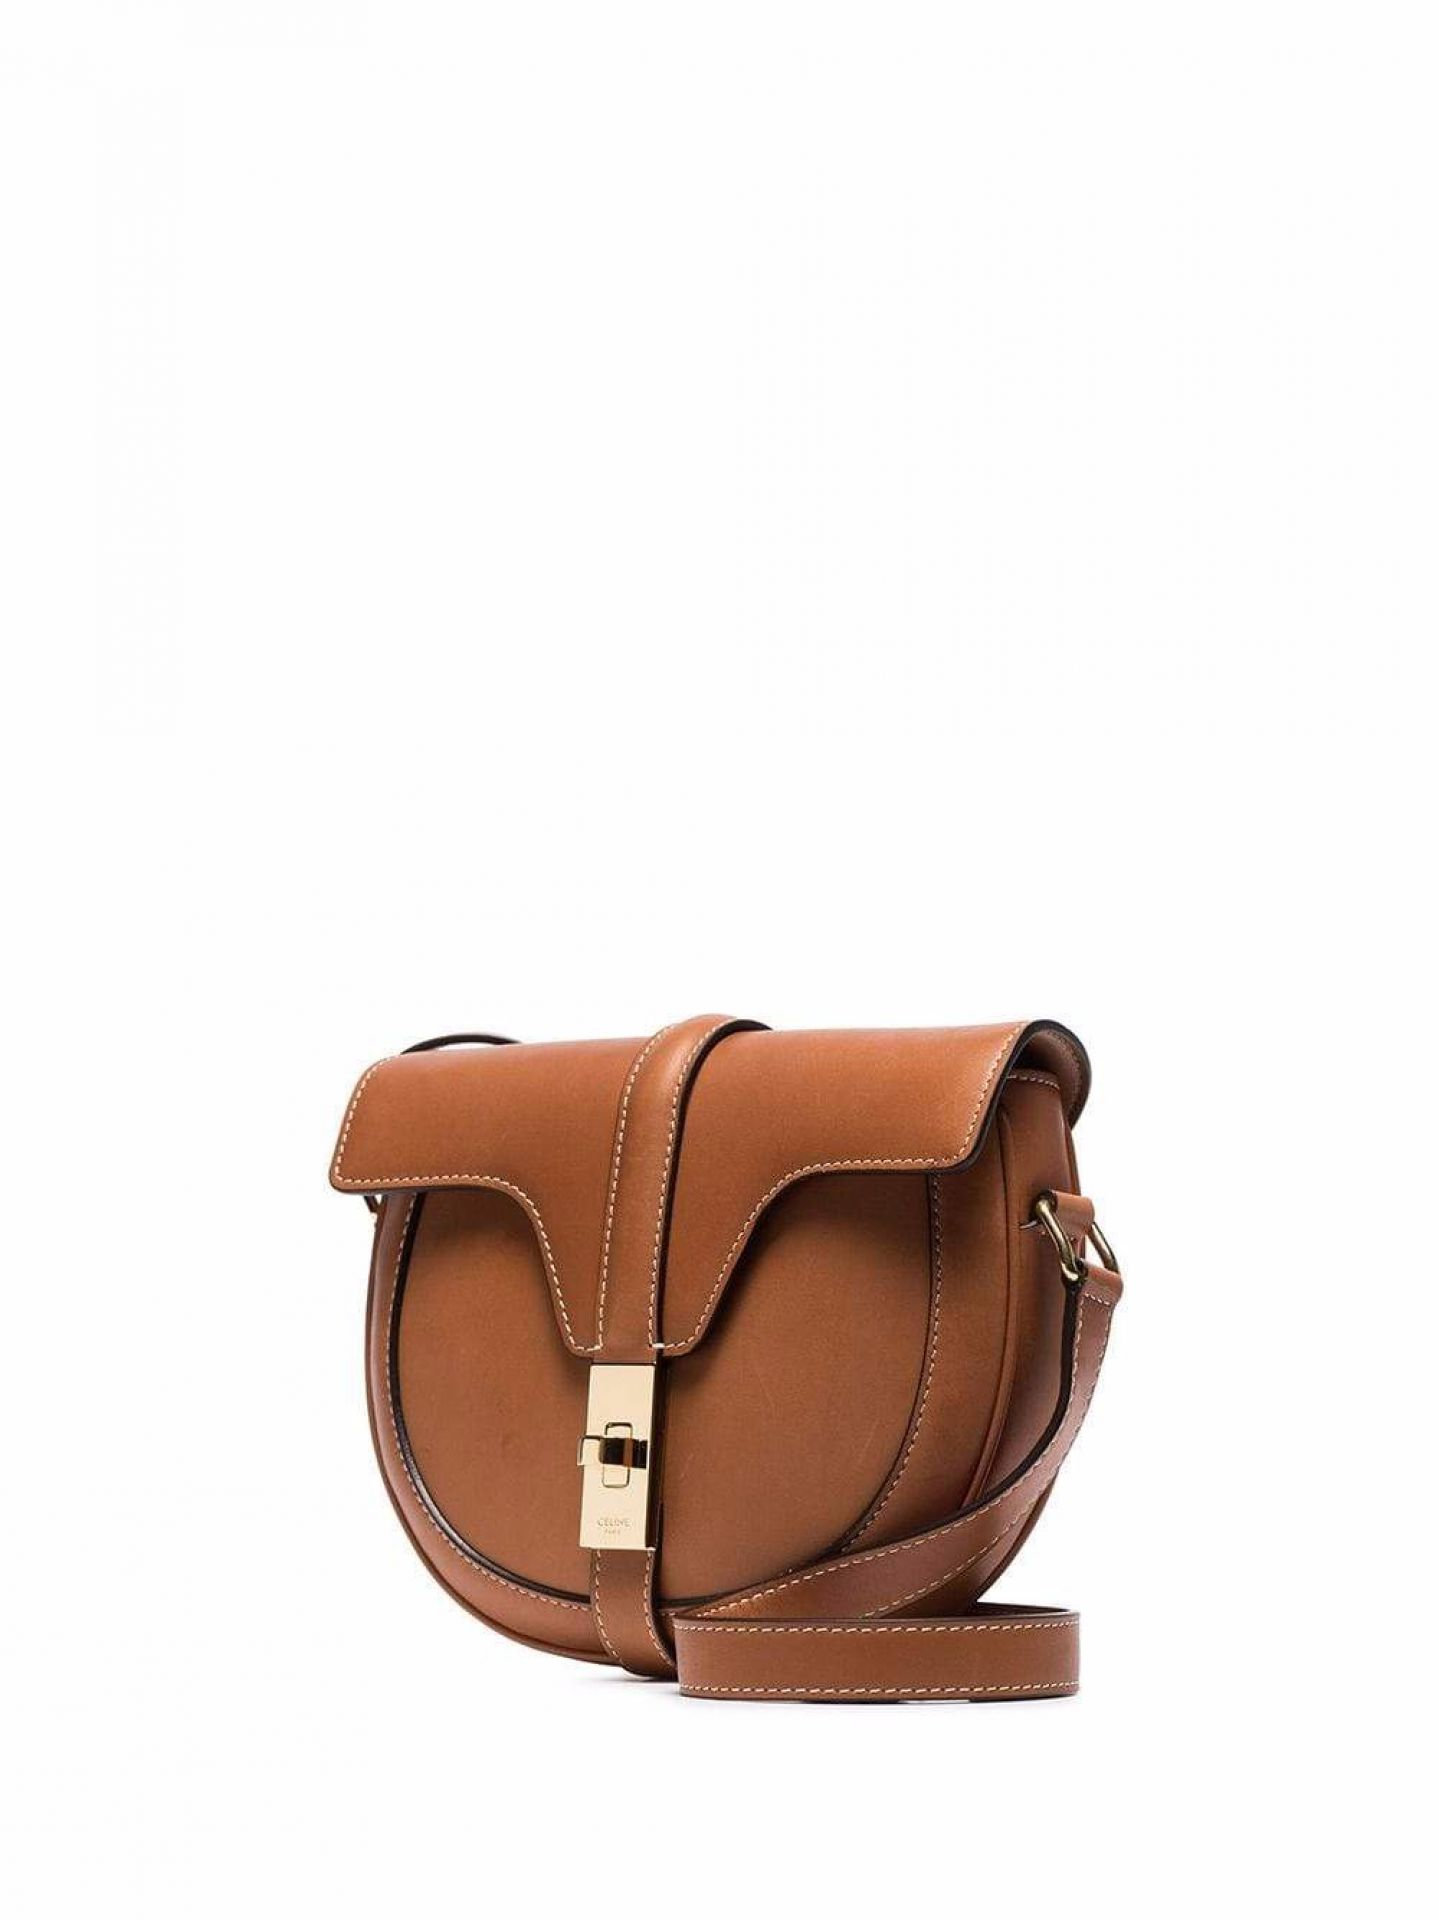 CELINE WOMENS BROWN TAN LEATHER SMALL BESACE SHOULDER BAG